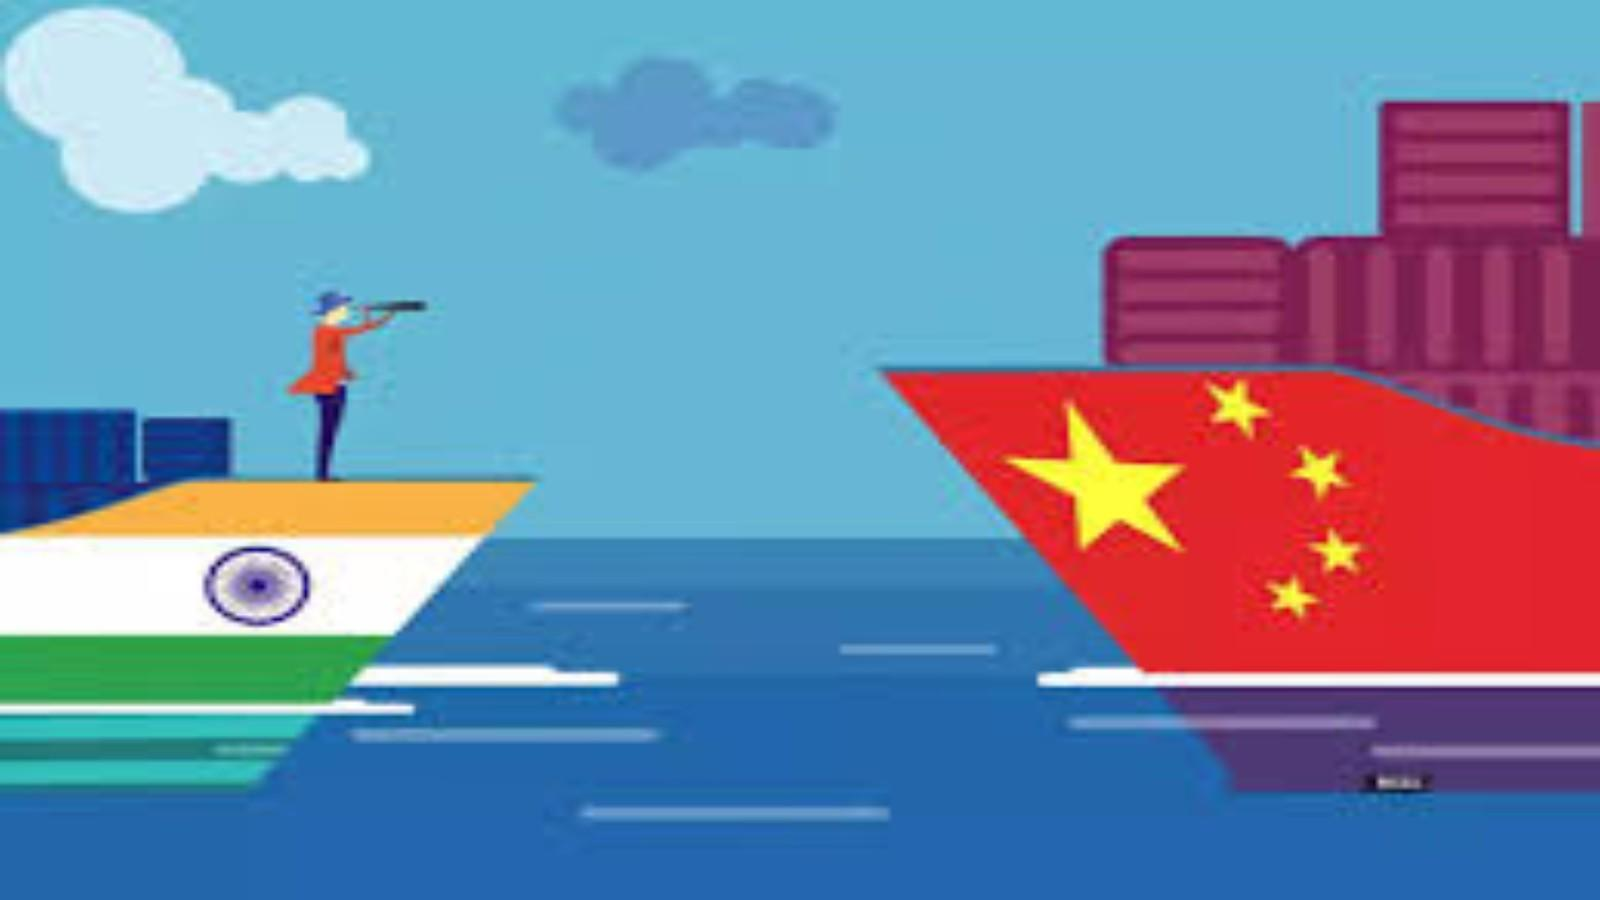 india-asks-china-to-stop-price-gouging-by-private-suppliers